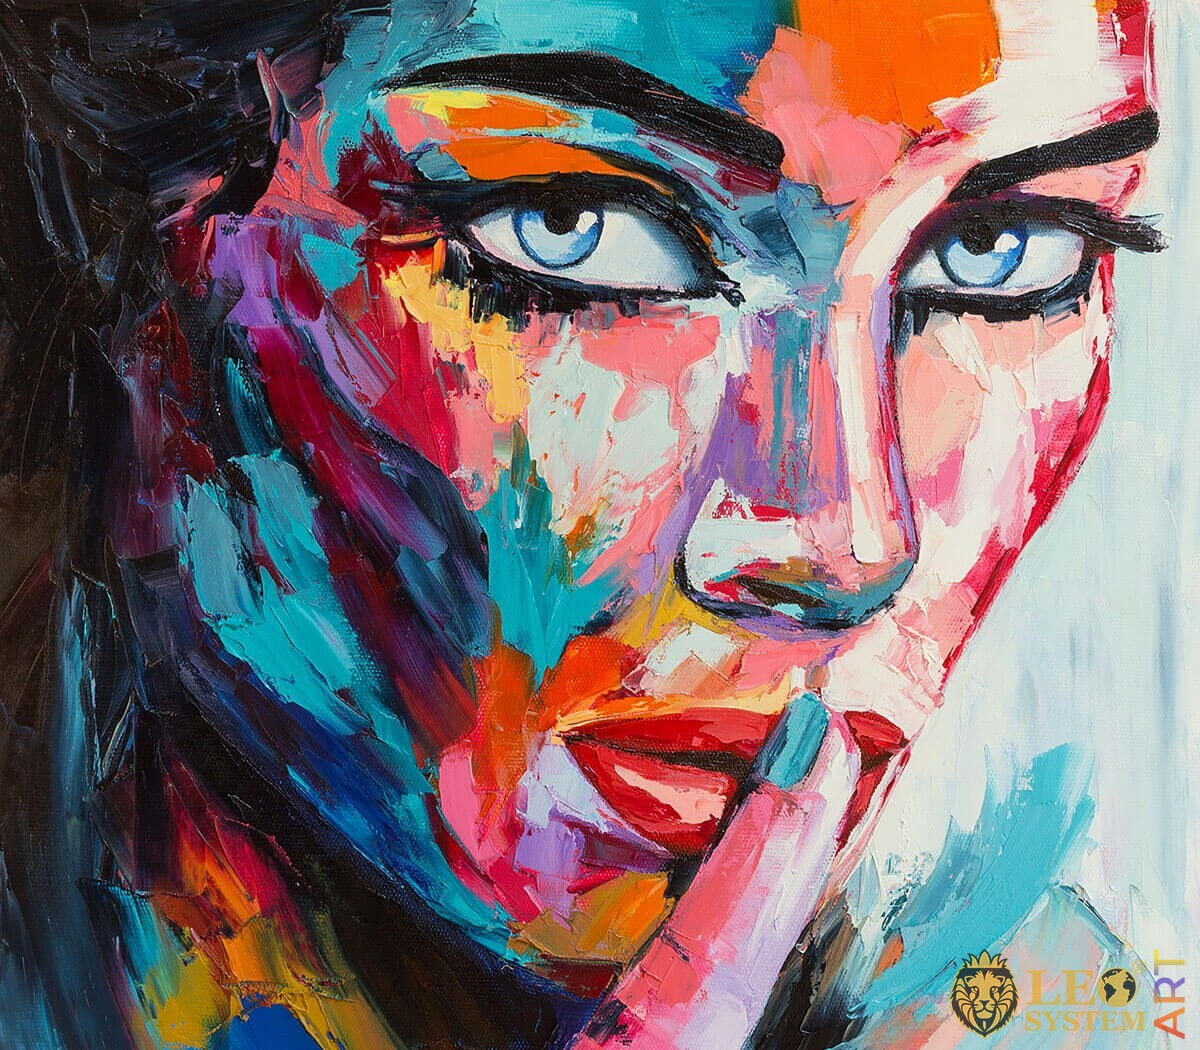 Woman with piercing eyes, original painting